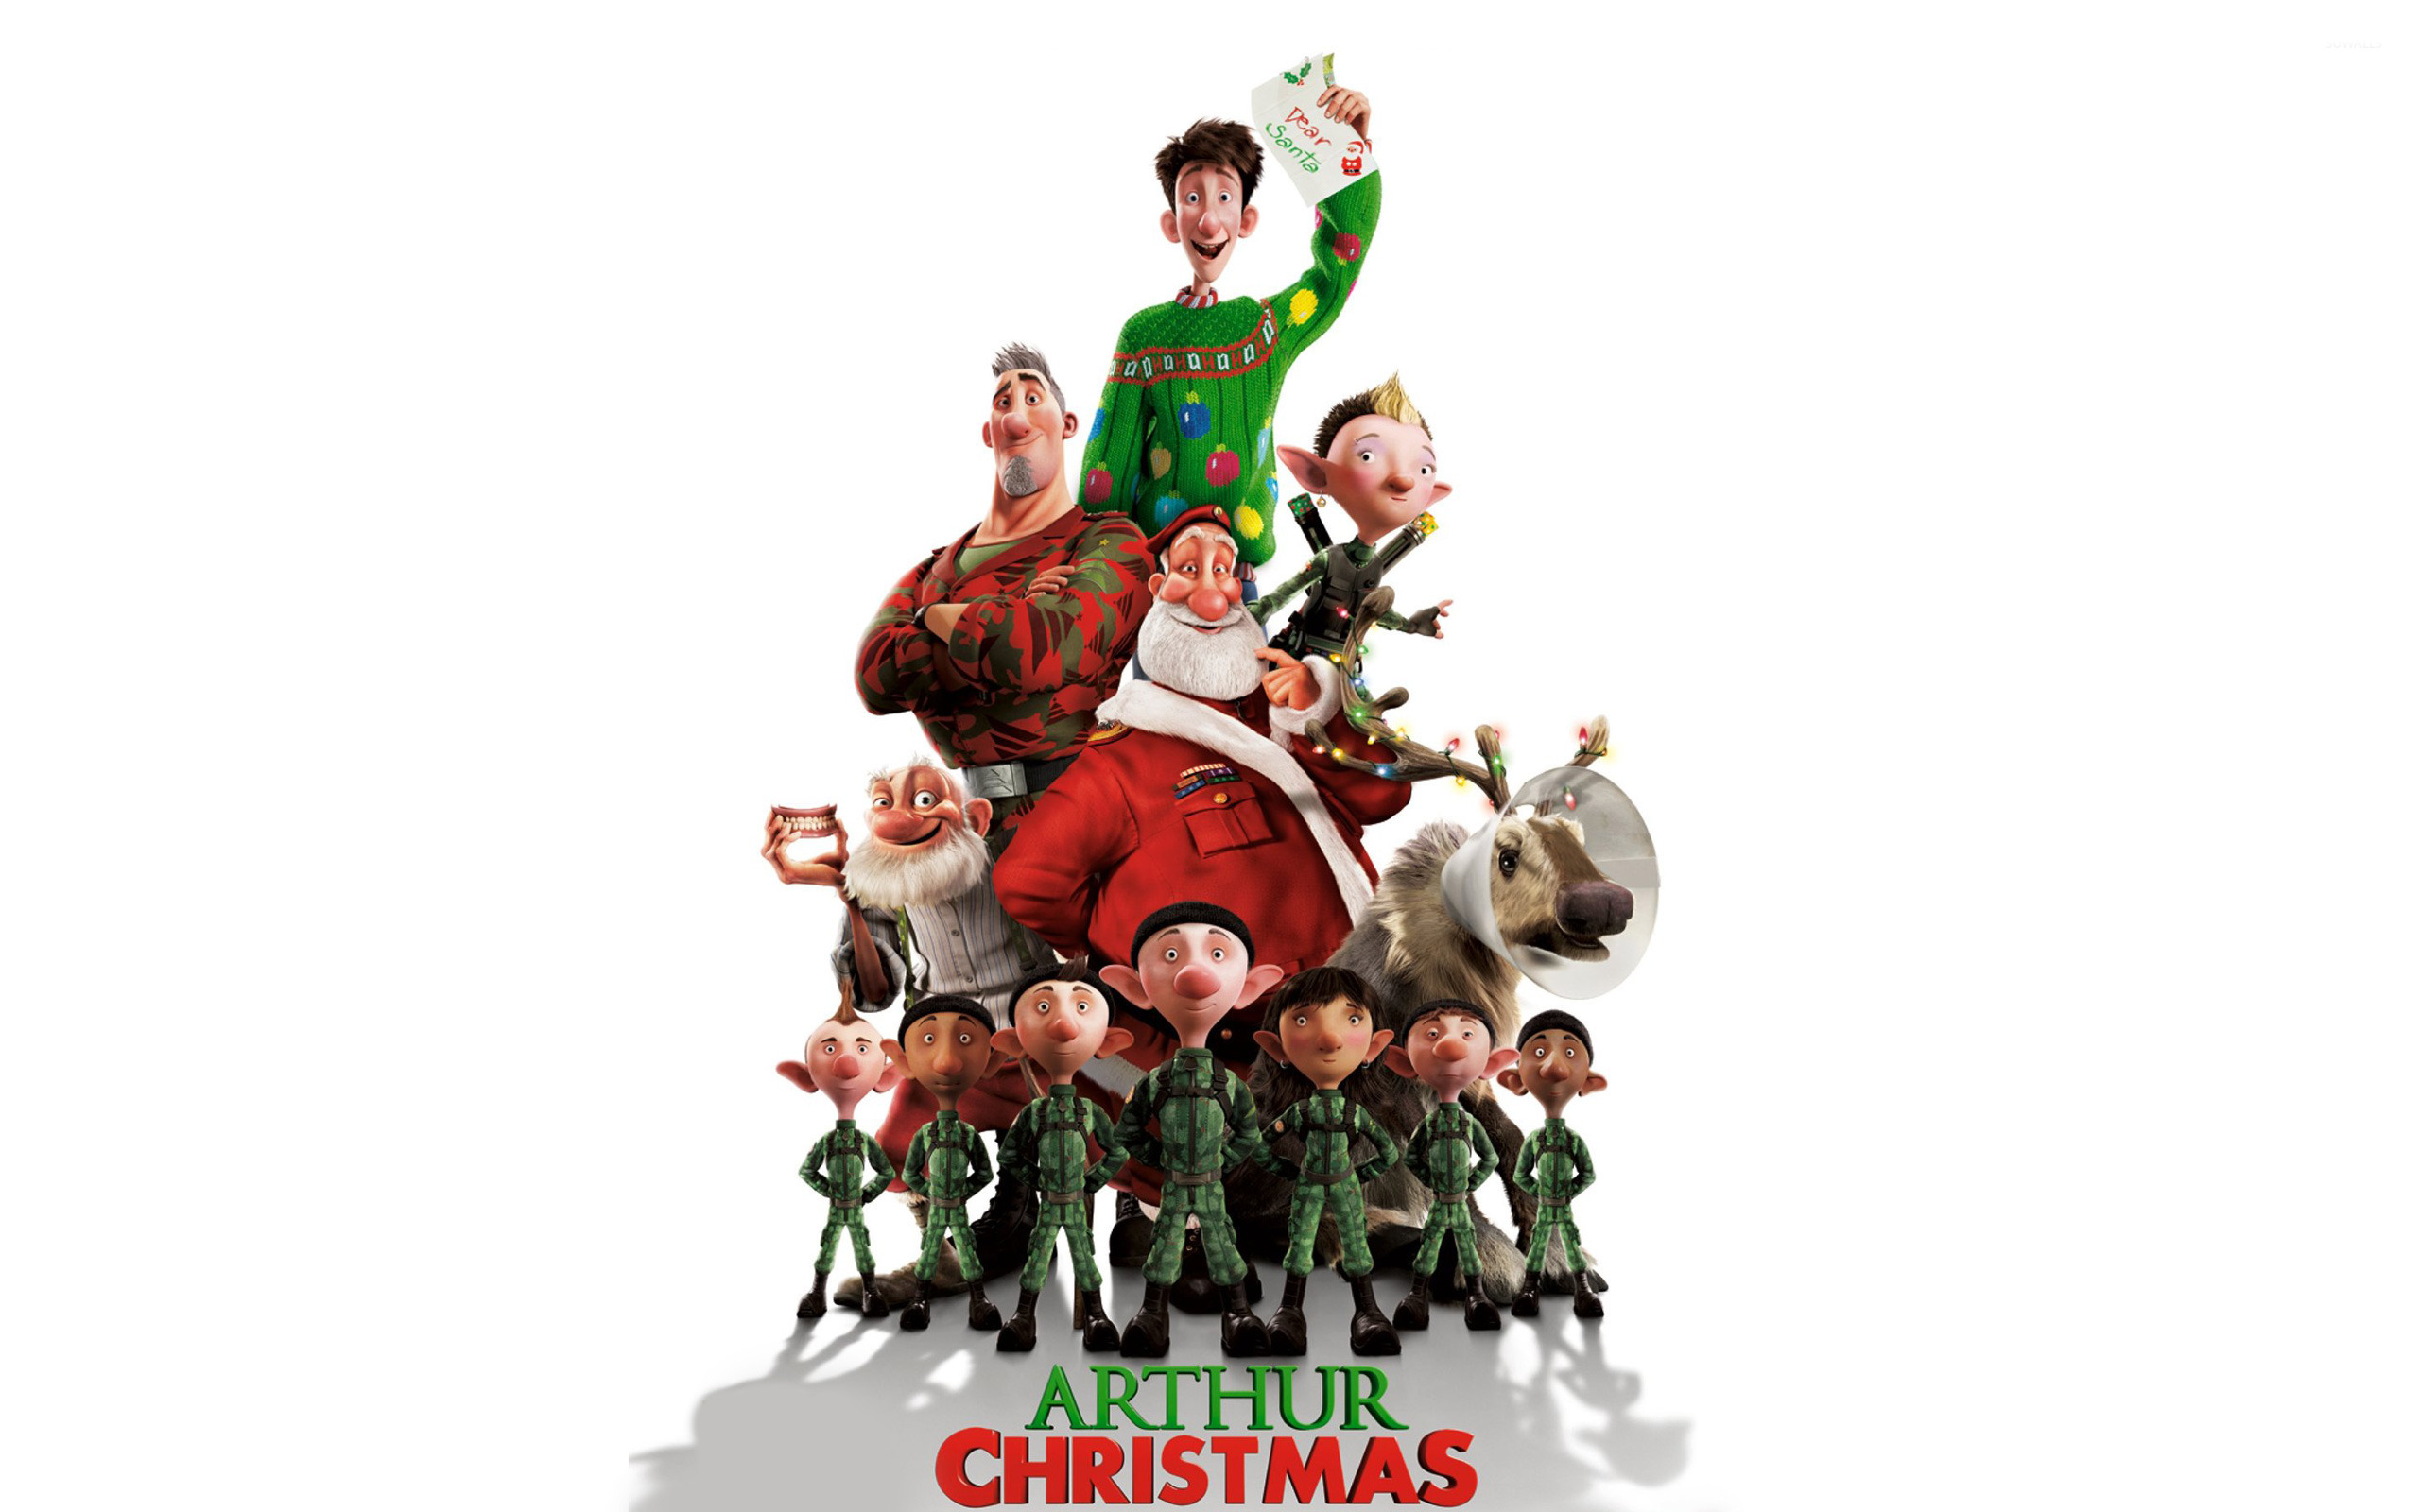 15 Arthur Christmas HD Wallpapers Background Images   Wallpaper 2560x1600